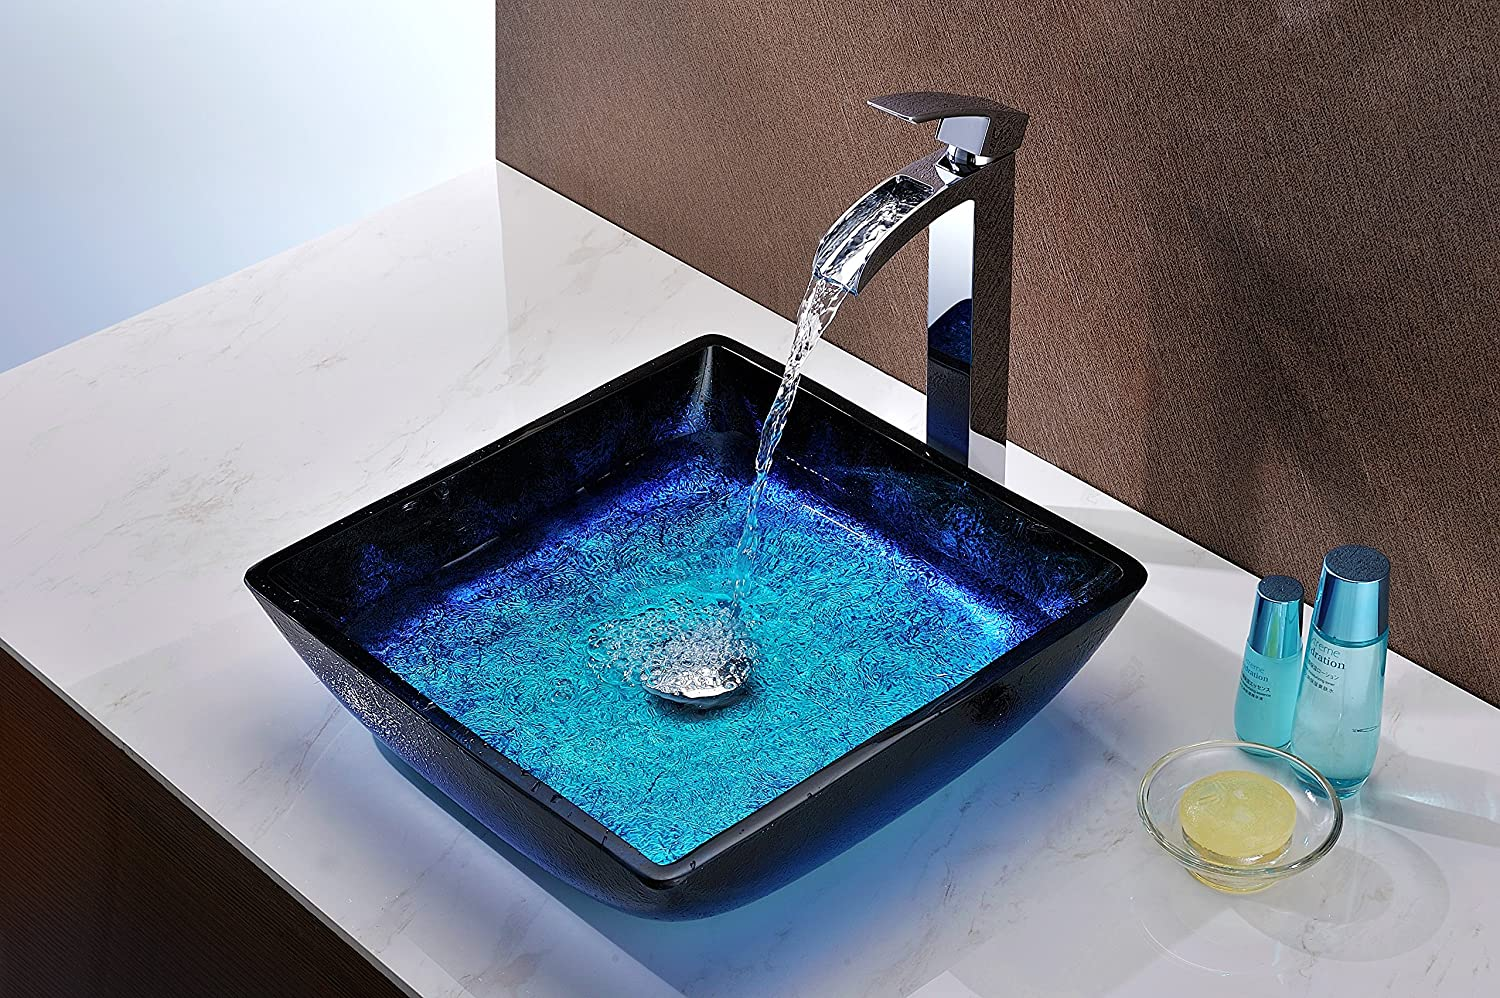 ANZZI Viace Rectangular Tempered Deco Glass Vessel Bathroom Sink in Blazing Blue Top Mount Toilet Sinks Above Counter Square Vanity Countertop Sink Bowl with Pop Up Drain LS-AZ056